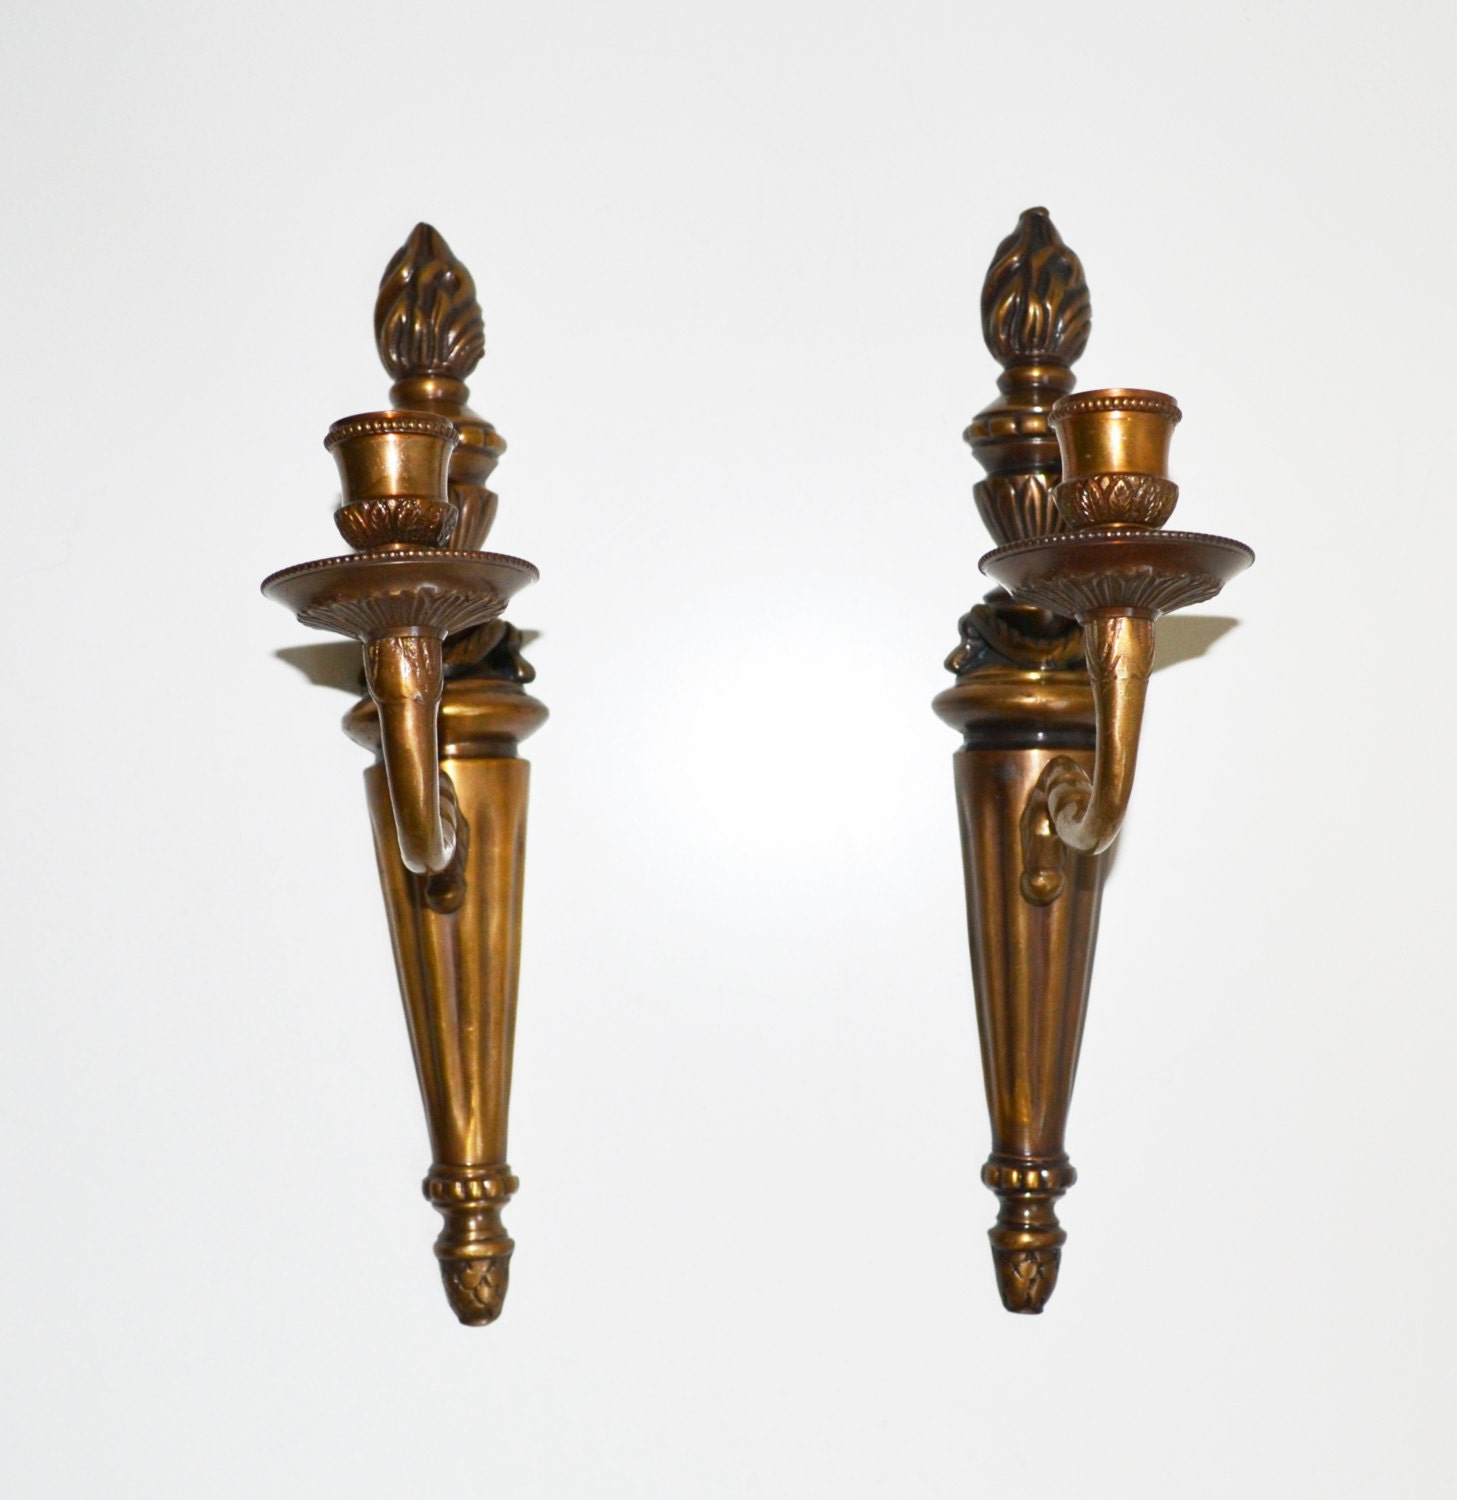 Vintage Brass Candle Wall Sconces Candle Holders by JudysJunktion